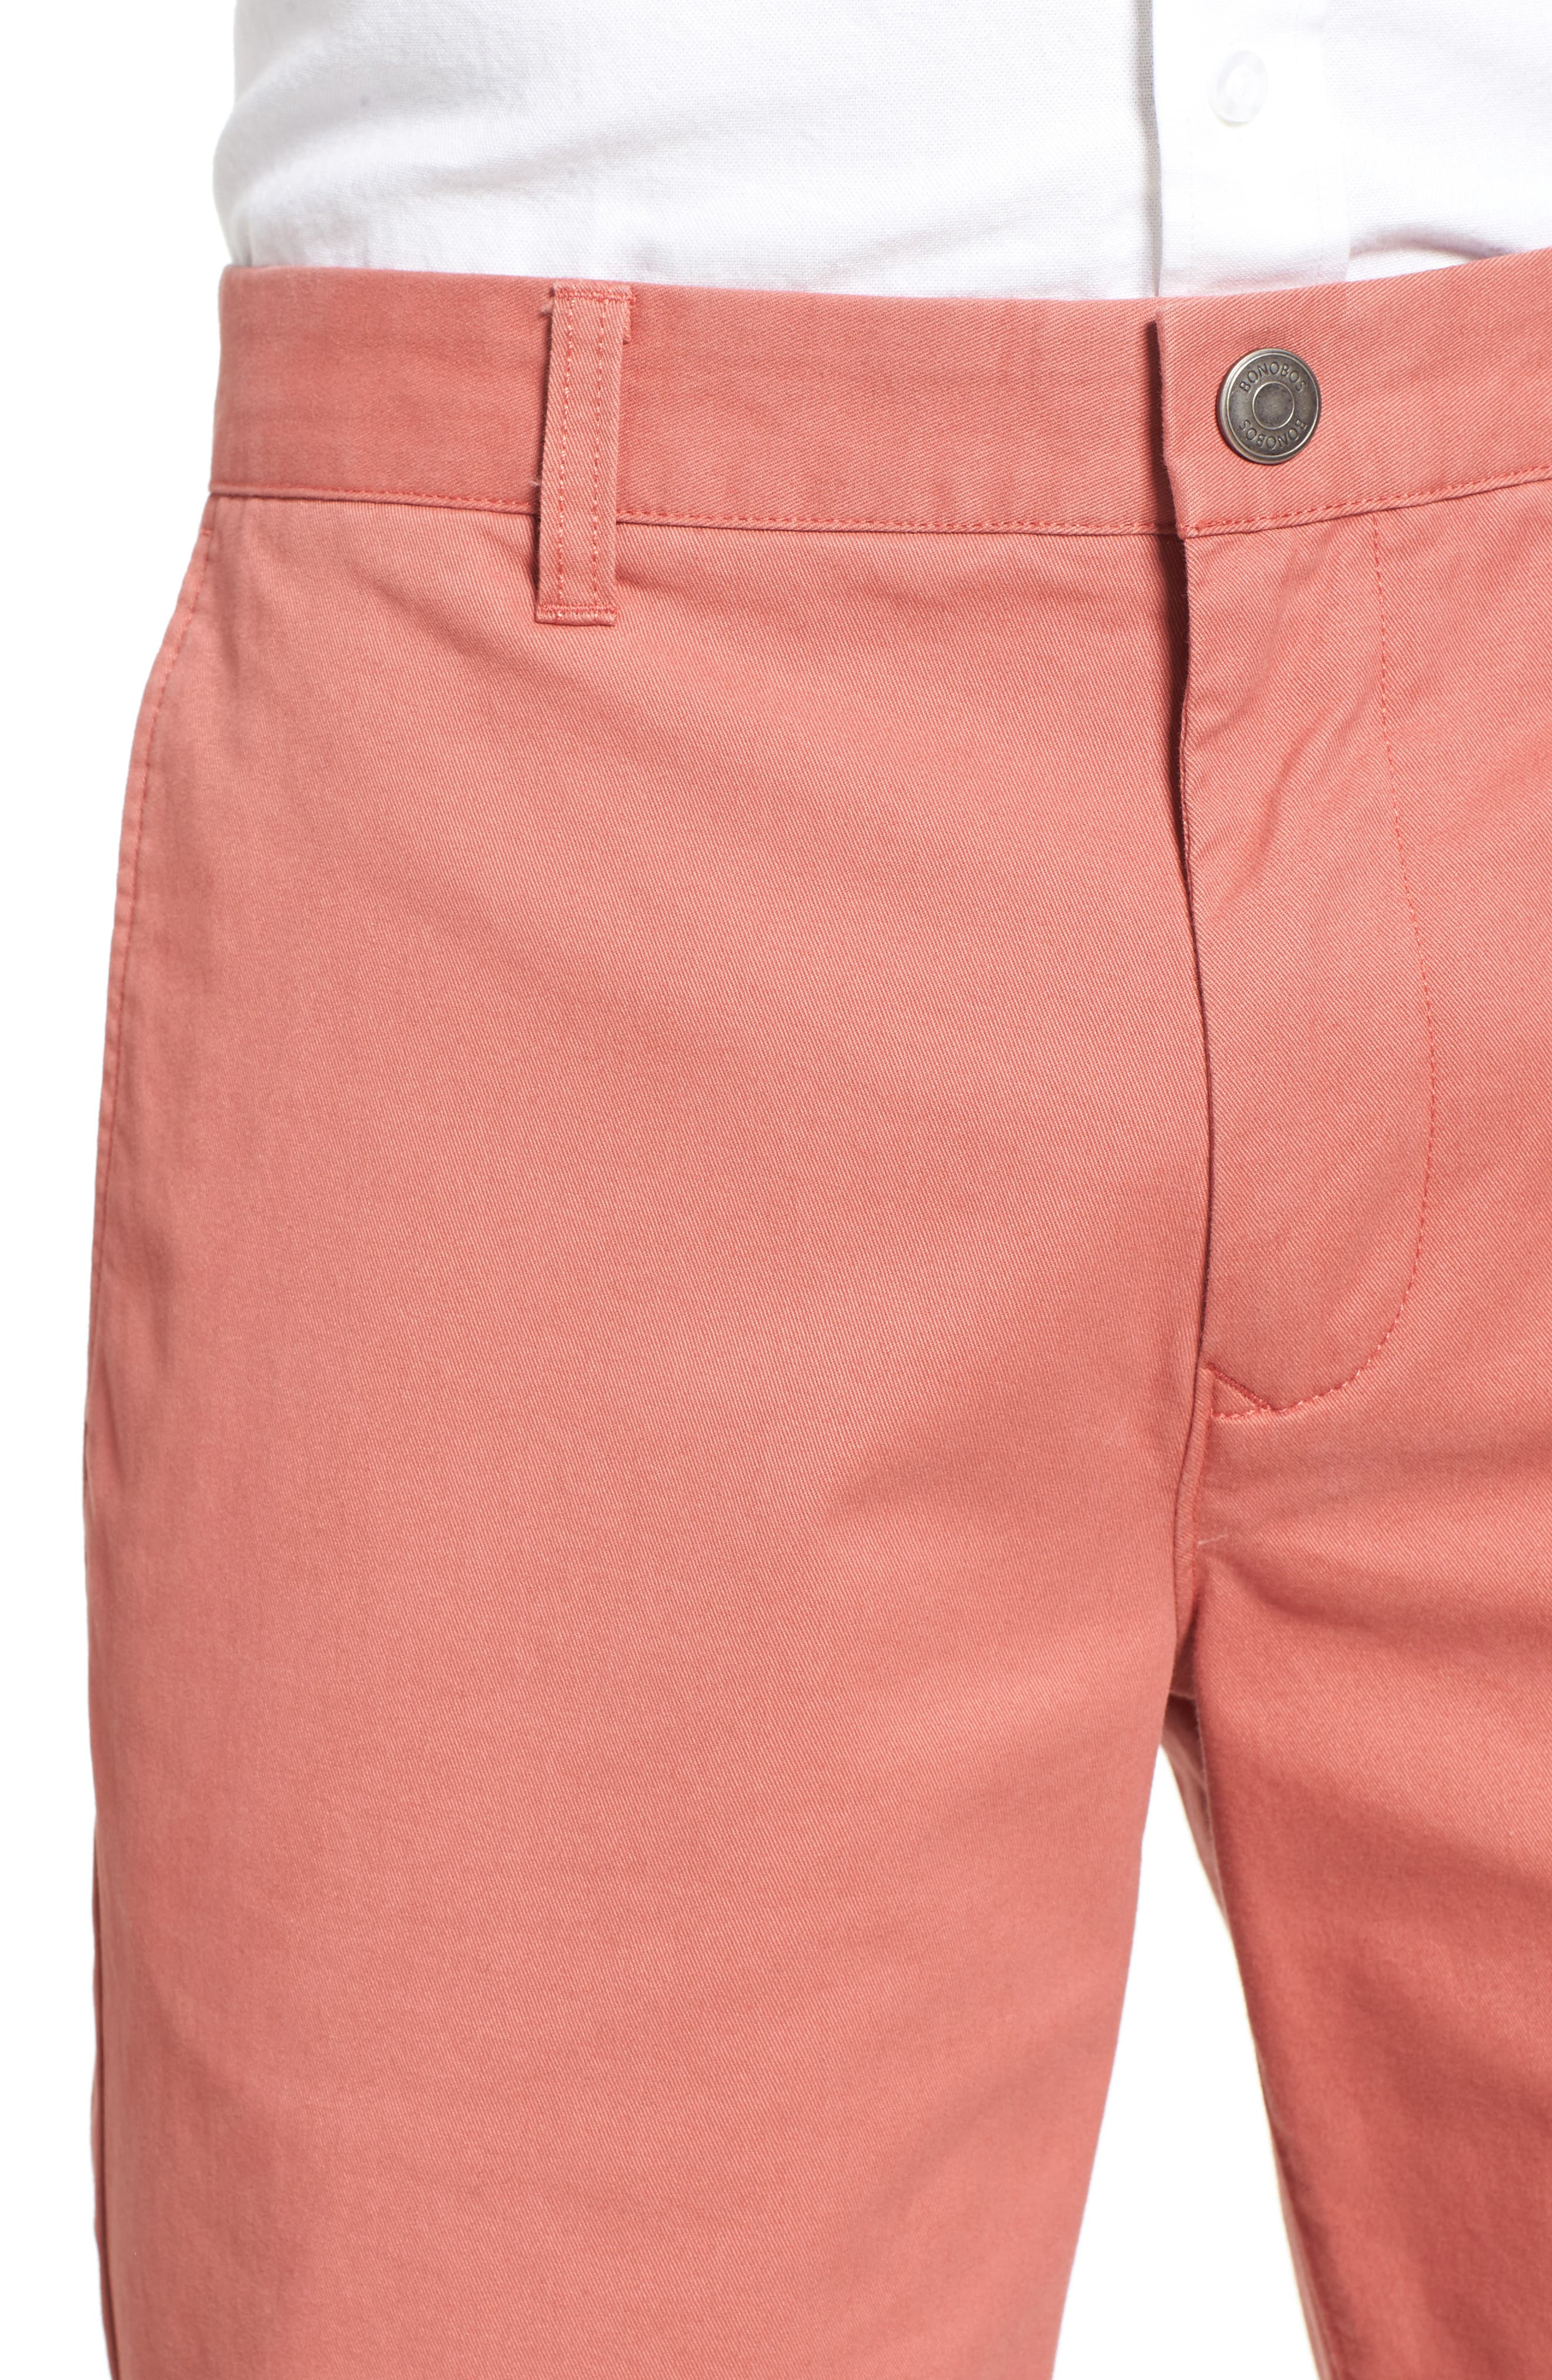 Stretch Washed Chino 7-Inch Shorts,                             Alternate thumbnail 89, color,